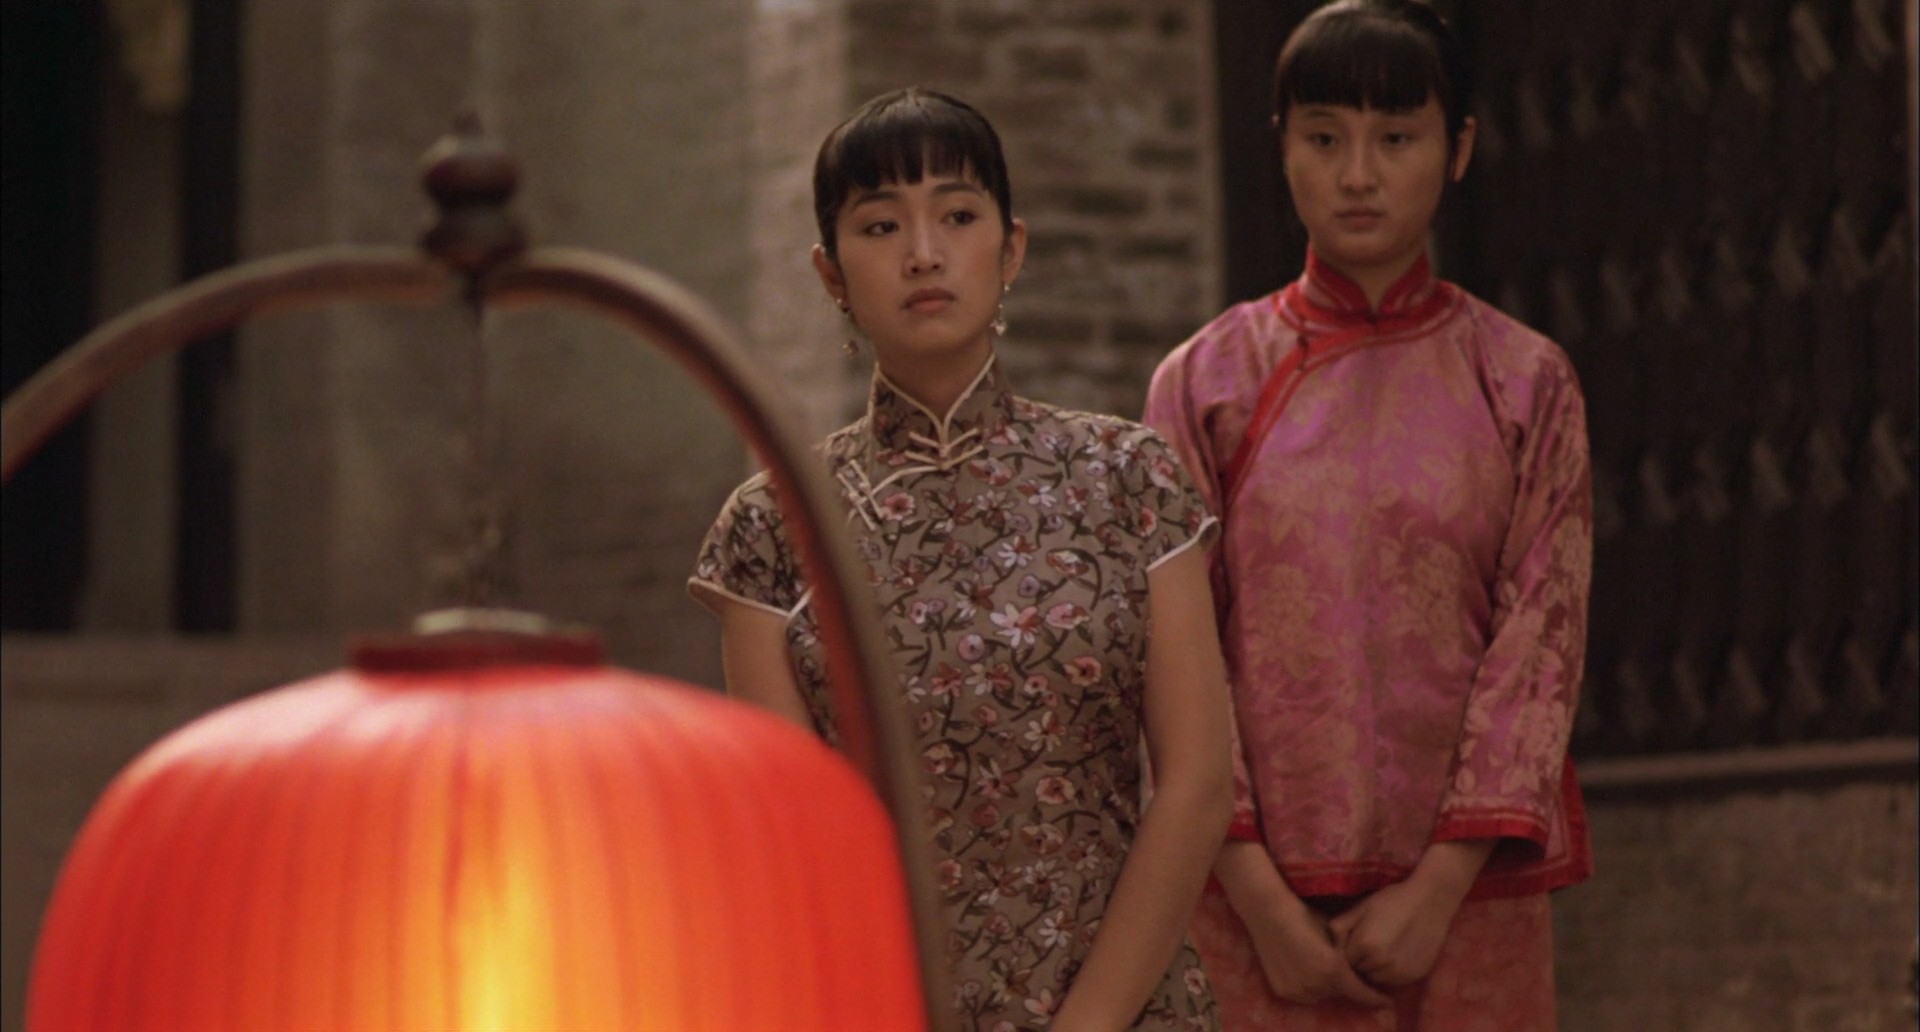 a literary analysis of raise the red lantern Analyze the artistic use of colours in zhang yimou's films screened in class during the term, particularly in his films red sorghum (1988) and raise the red lantern (1991) 3 make an academic analysis of red sorghum from your own perspective.